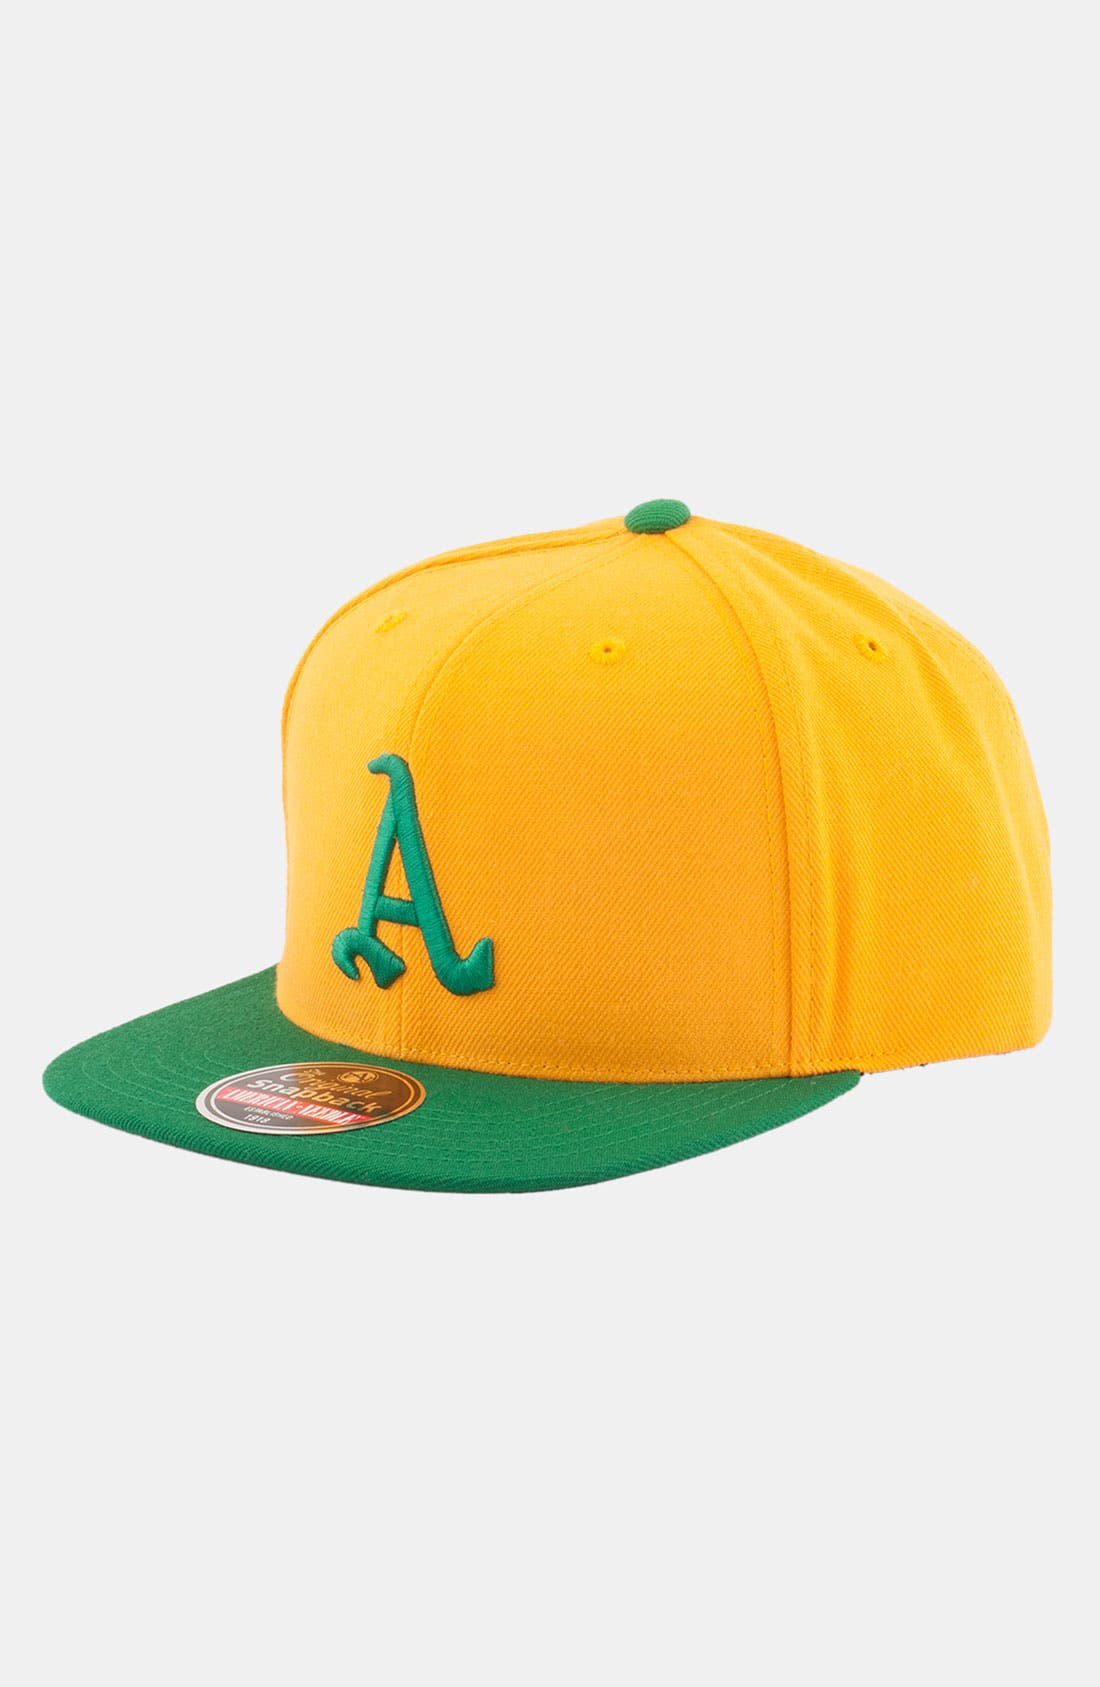 Alternate Image 1 Selected - American Needle 'Oakland Athletics - Cooperstown' Snapback Baseball Cap